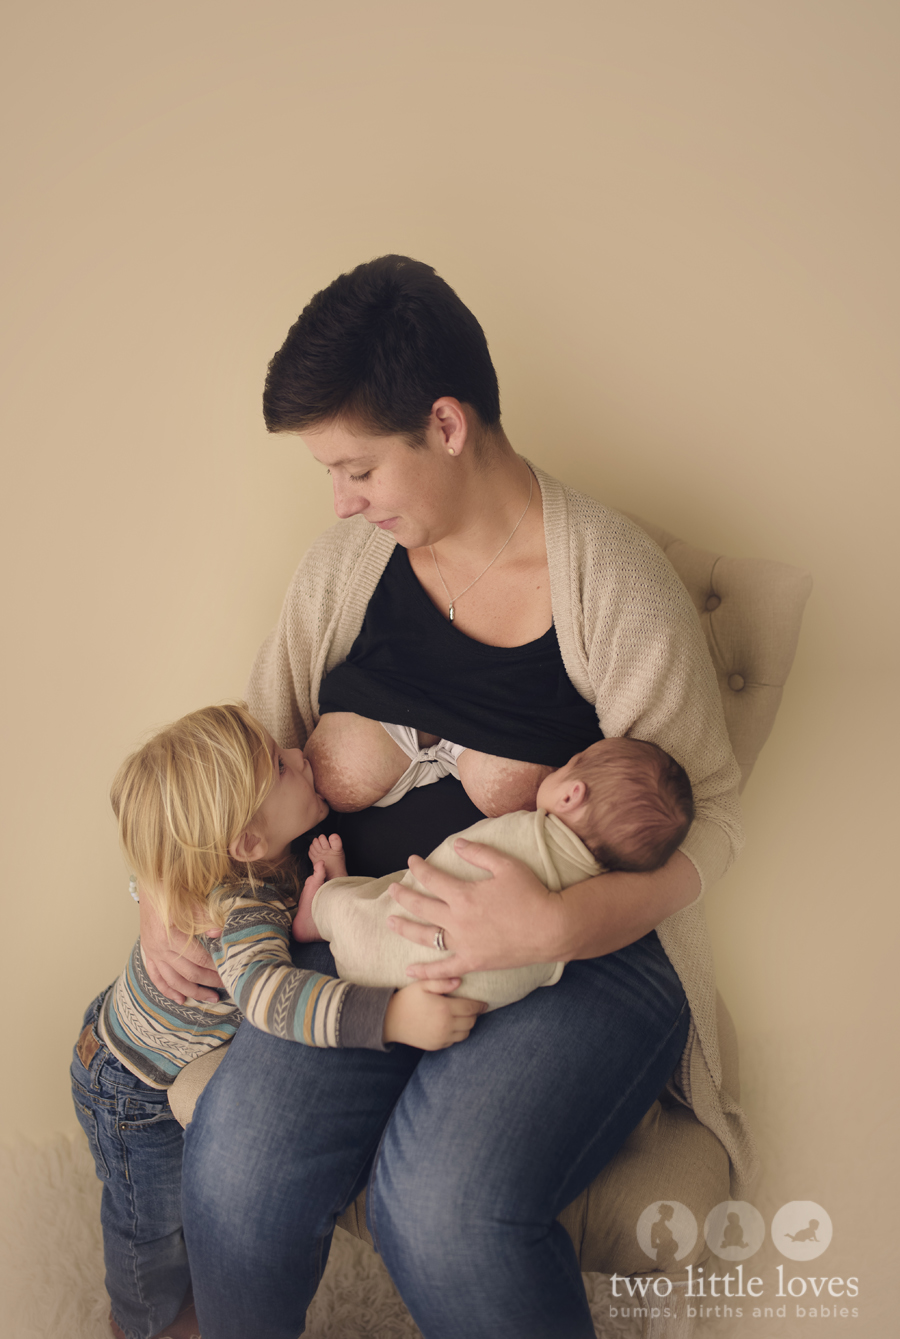 A Tandem Breastfeeding & Newborn Session_Warner_Robins_Georgia_Newborn_Photography03.jpg